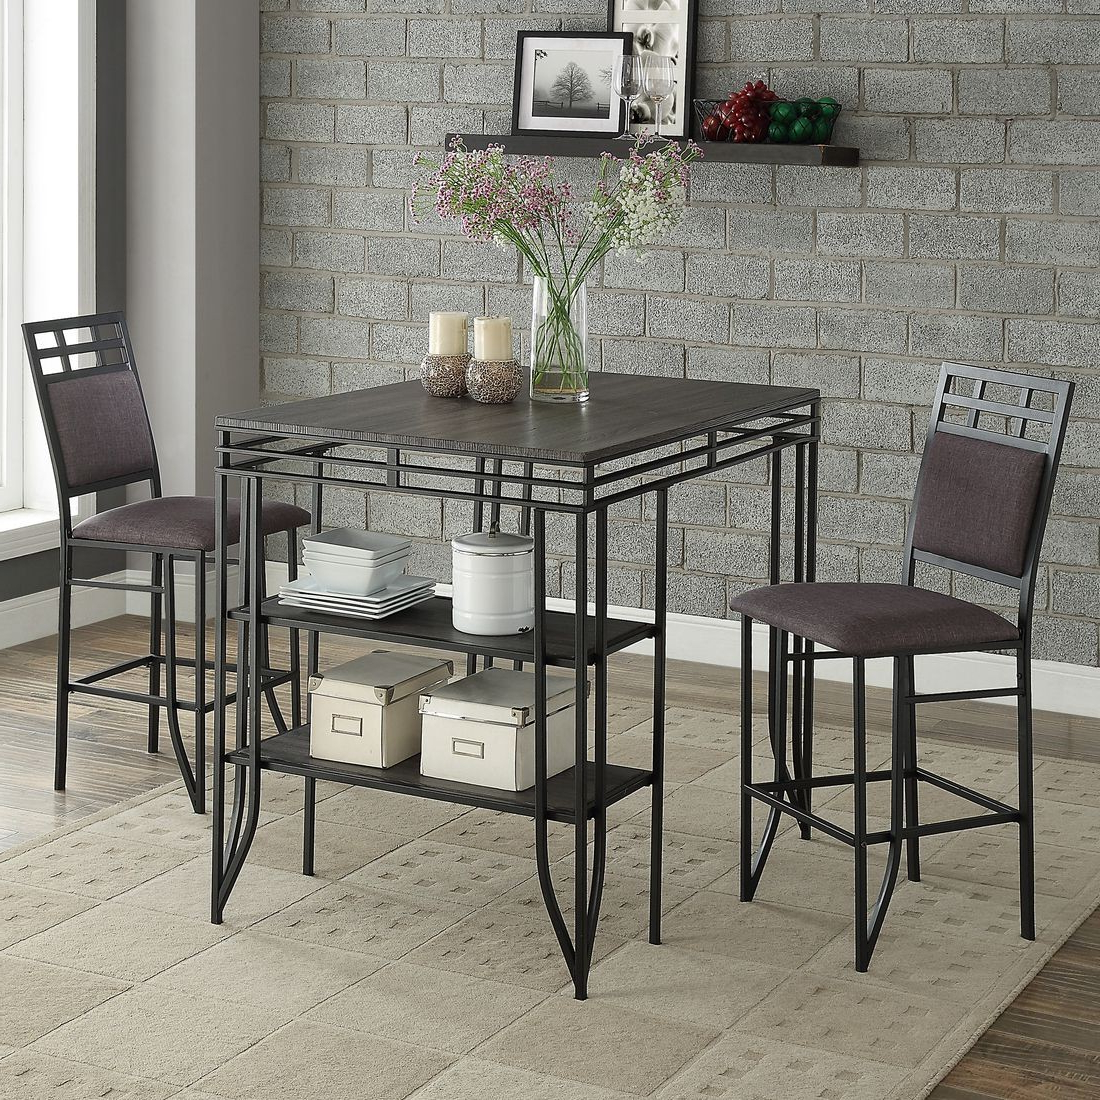 Well Liked Crown Mark Matrix 3 Piece Counter Height Dining Set In Black Throughout 3 Piece Dining Sets (View 20 of 20)